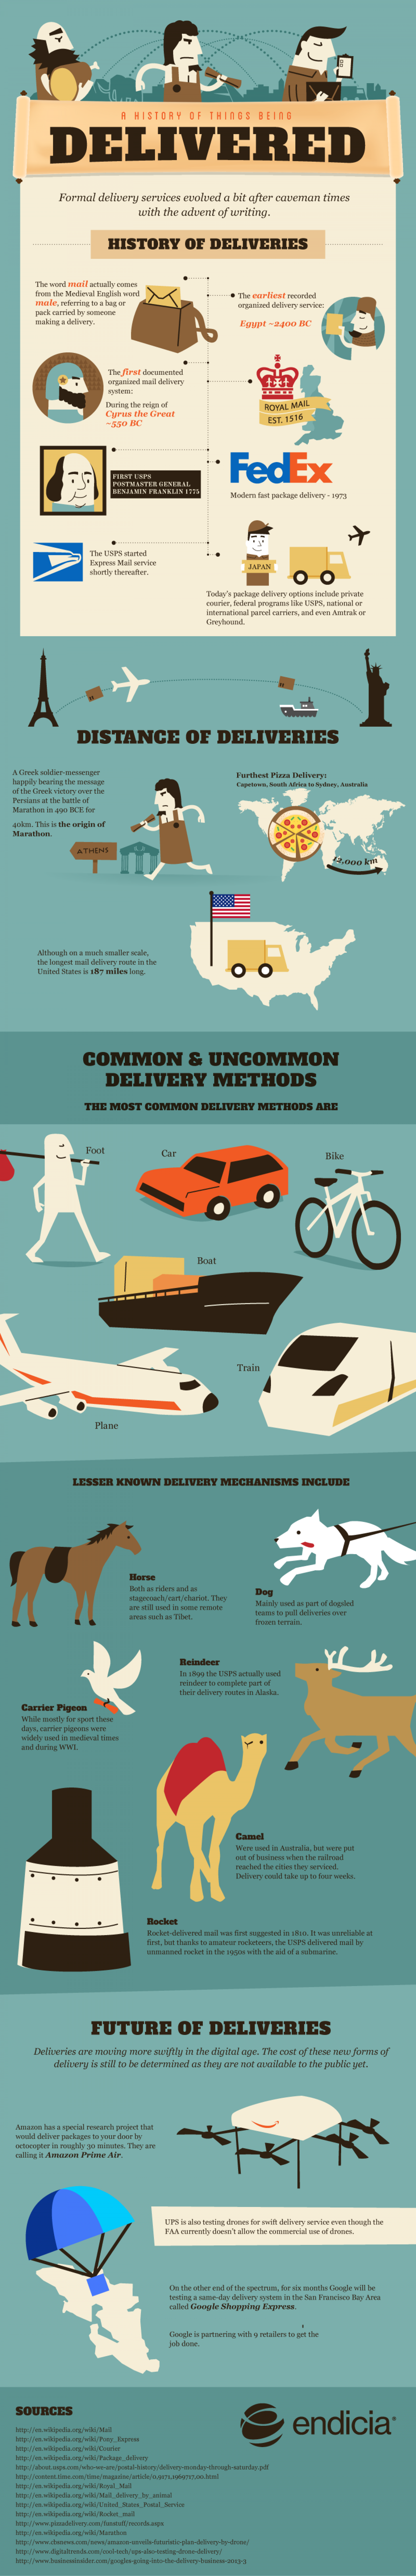 The Great Evolution of Deliveries Infographic